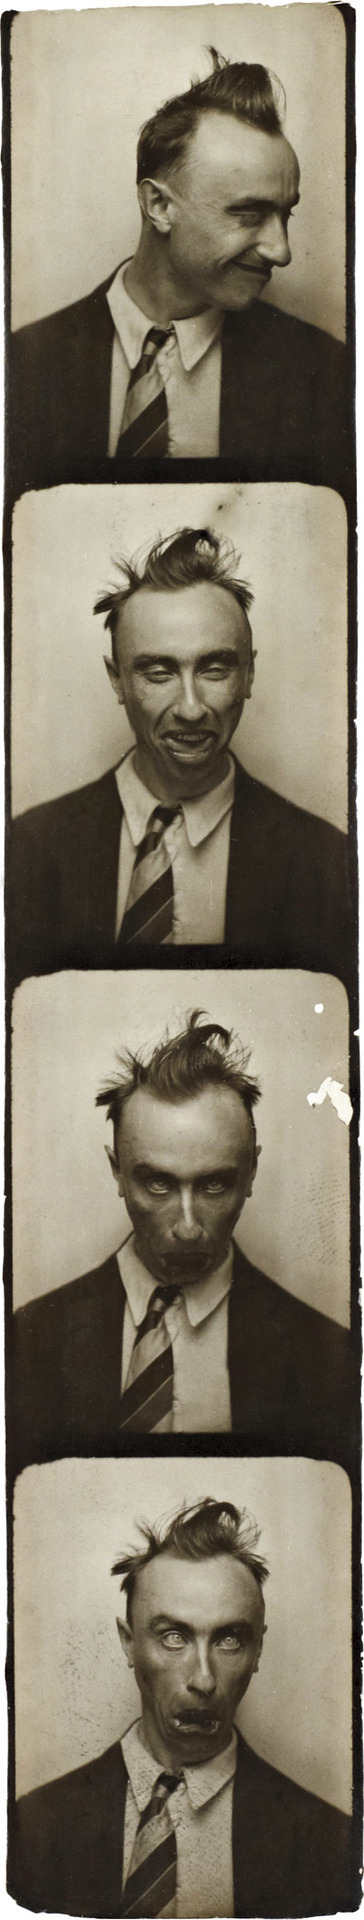 Yves Tanguy, Selfportrait in a Photobooth ca. 1929.  © Collection Musée de l'Elysée, Lausanne / 2011, ProLitteris, Zurich